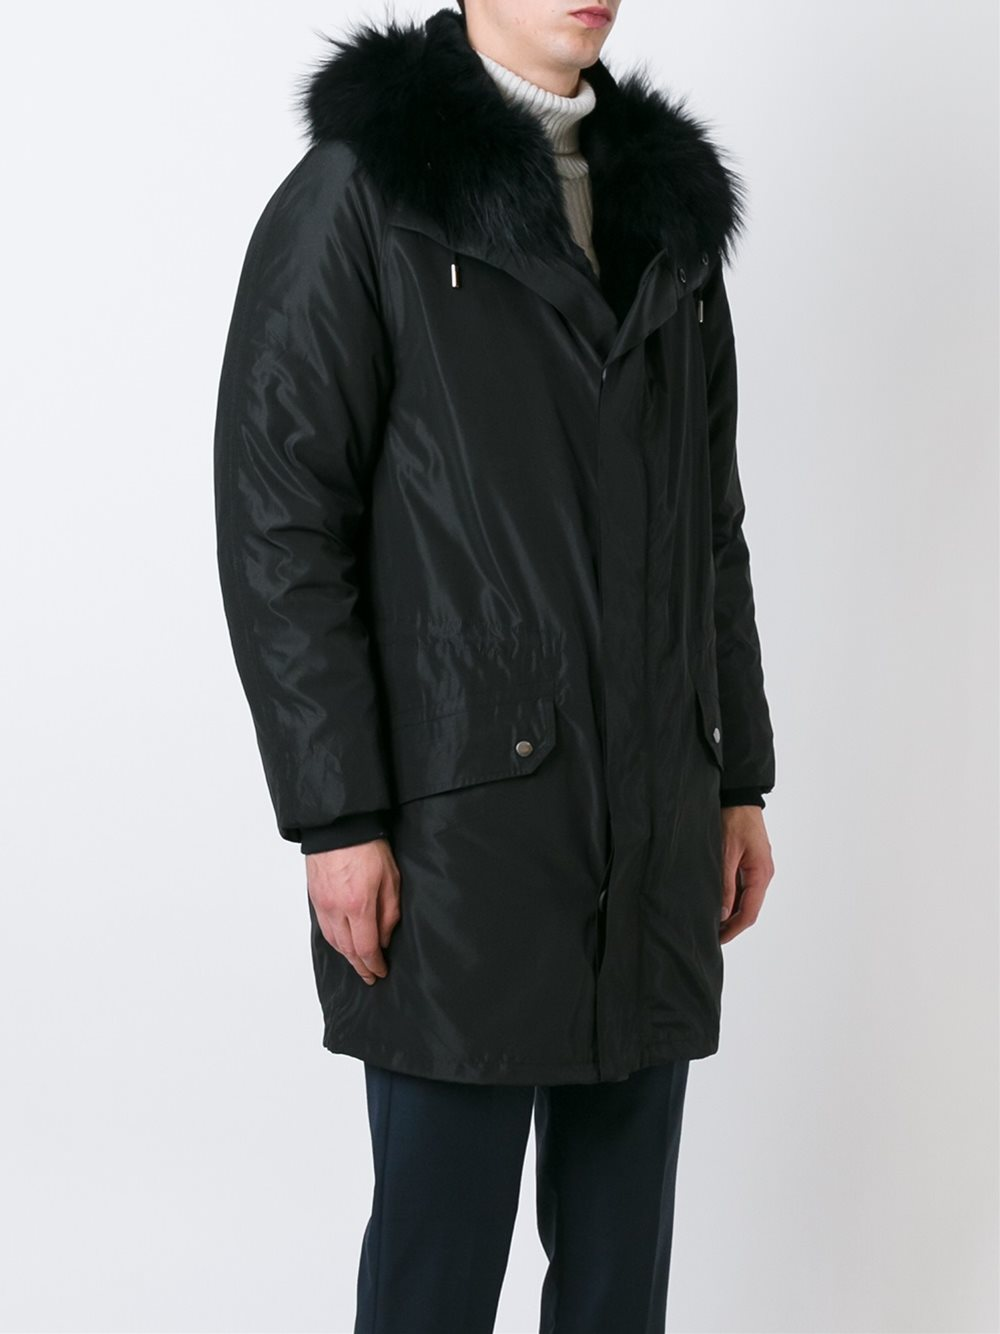 New Yves Salomon Parka,  full Fur lining, black BNWT, men's (L) finest quality, luxury warmth